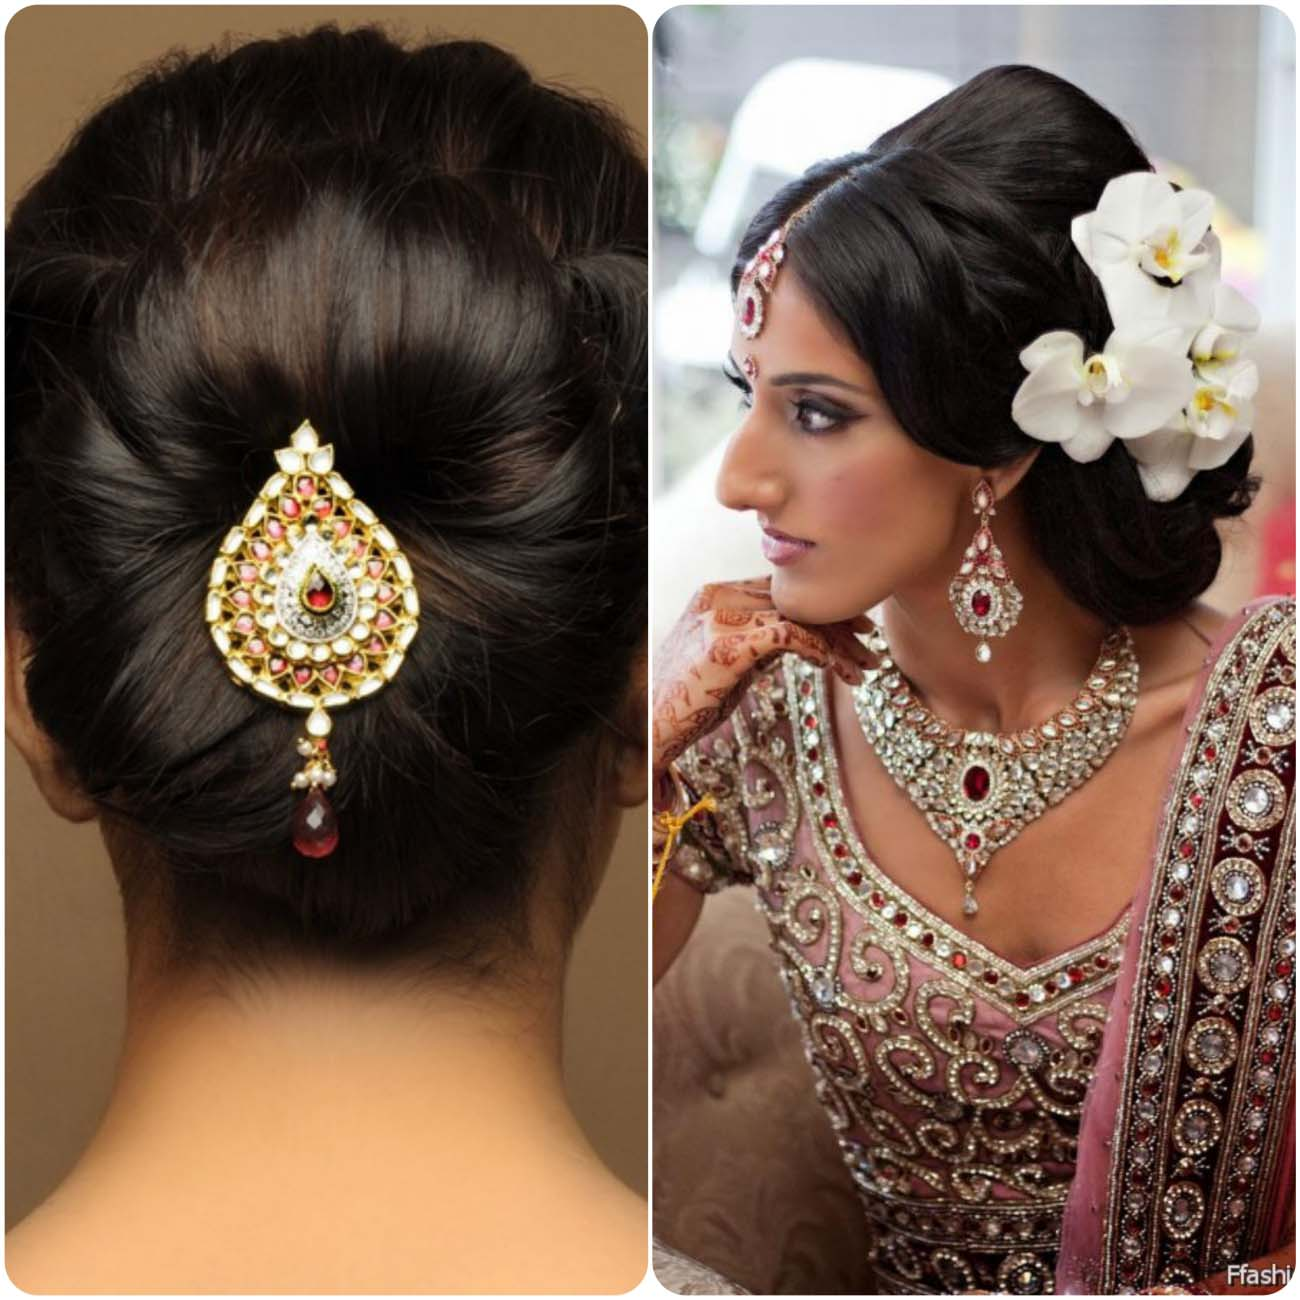 Women Fashion Girls Dress: Indian Native Wedding Hair